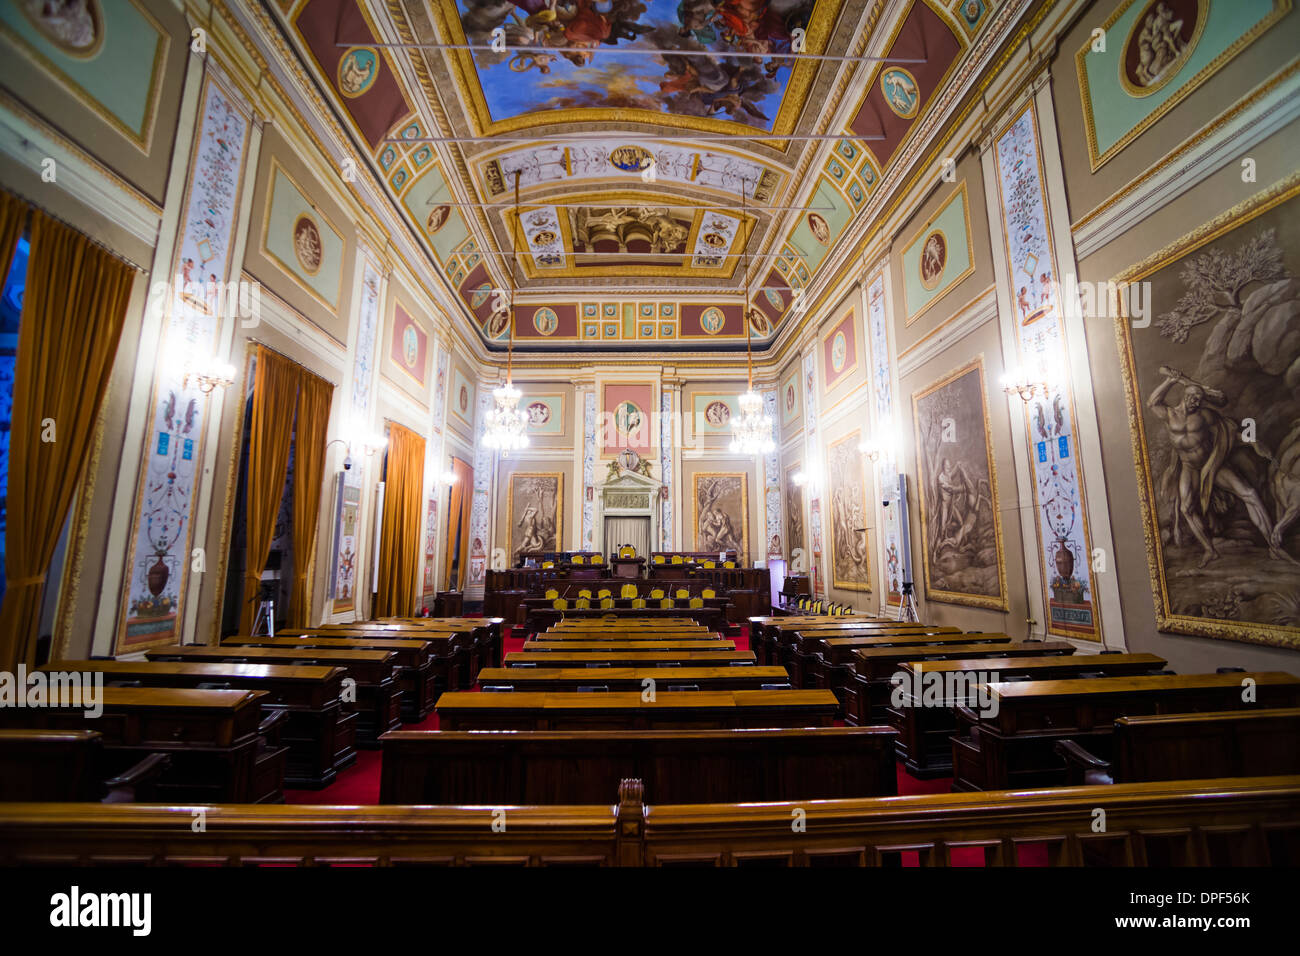 Courtroom at Royal Palace of Palermo (Palazzo Reale) (Palace of the Normans), Palermo, Sicily, Italy, Europe - Stock Image